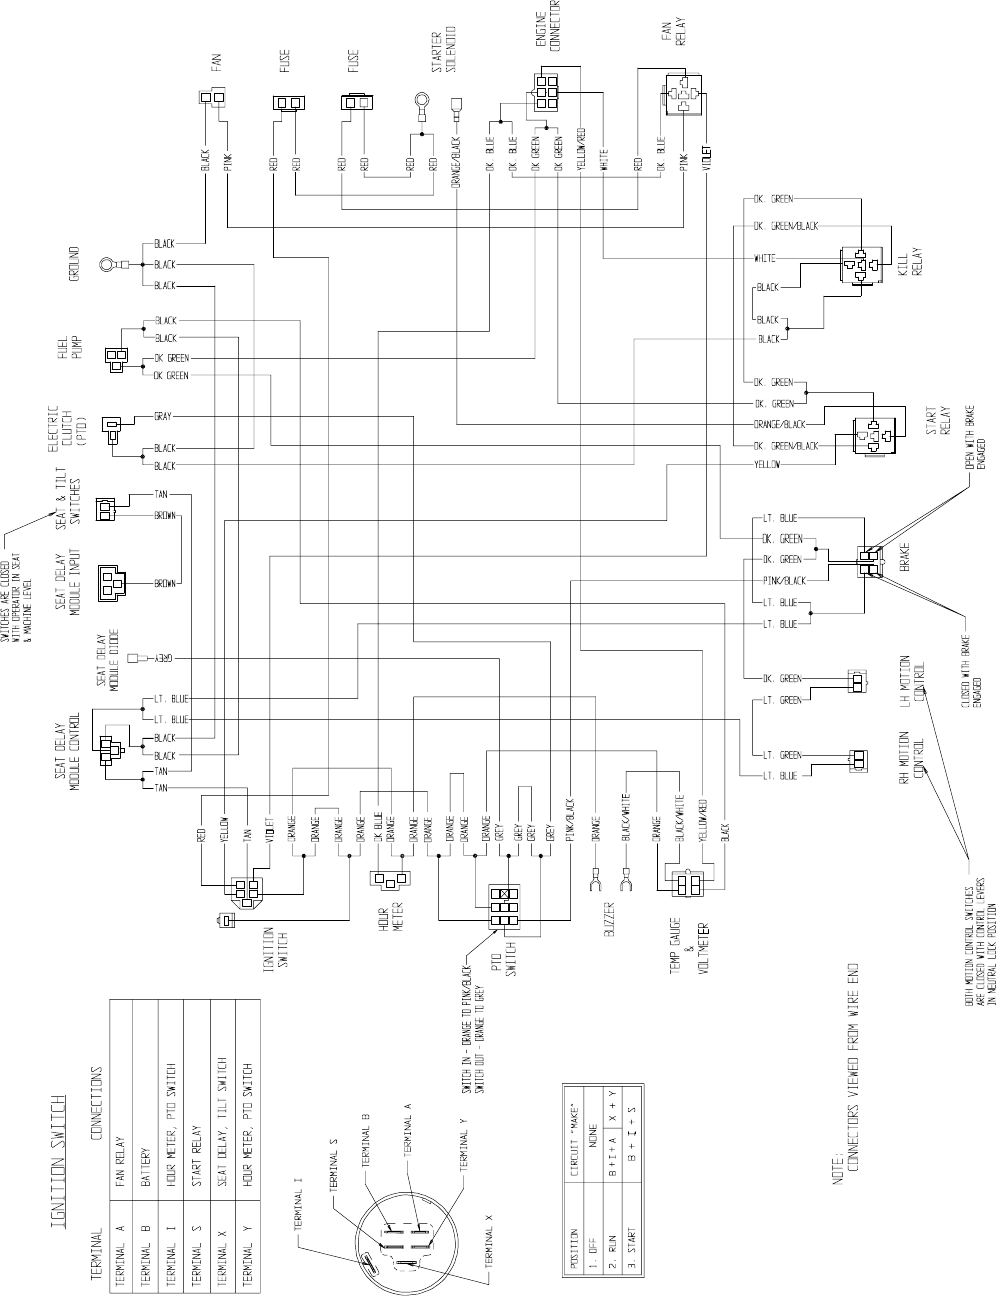 fe0094d5 b49c 4e15 9446 11a96067f628 bg35 hd wallpapers wiring diagram for exmark lazer z 3dhdhddesignf tk Muncie PTO Diagram at bakdesigns.co